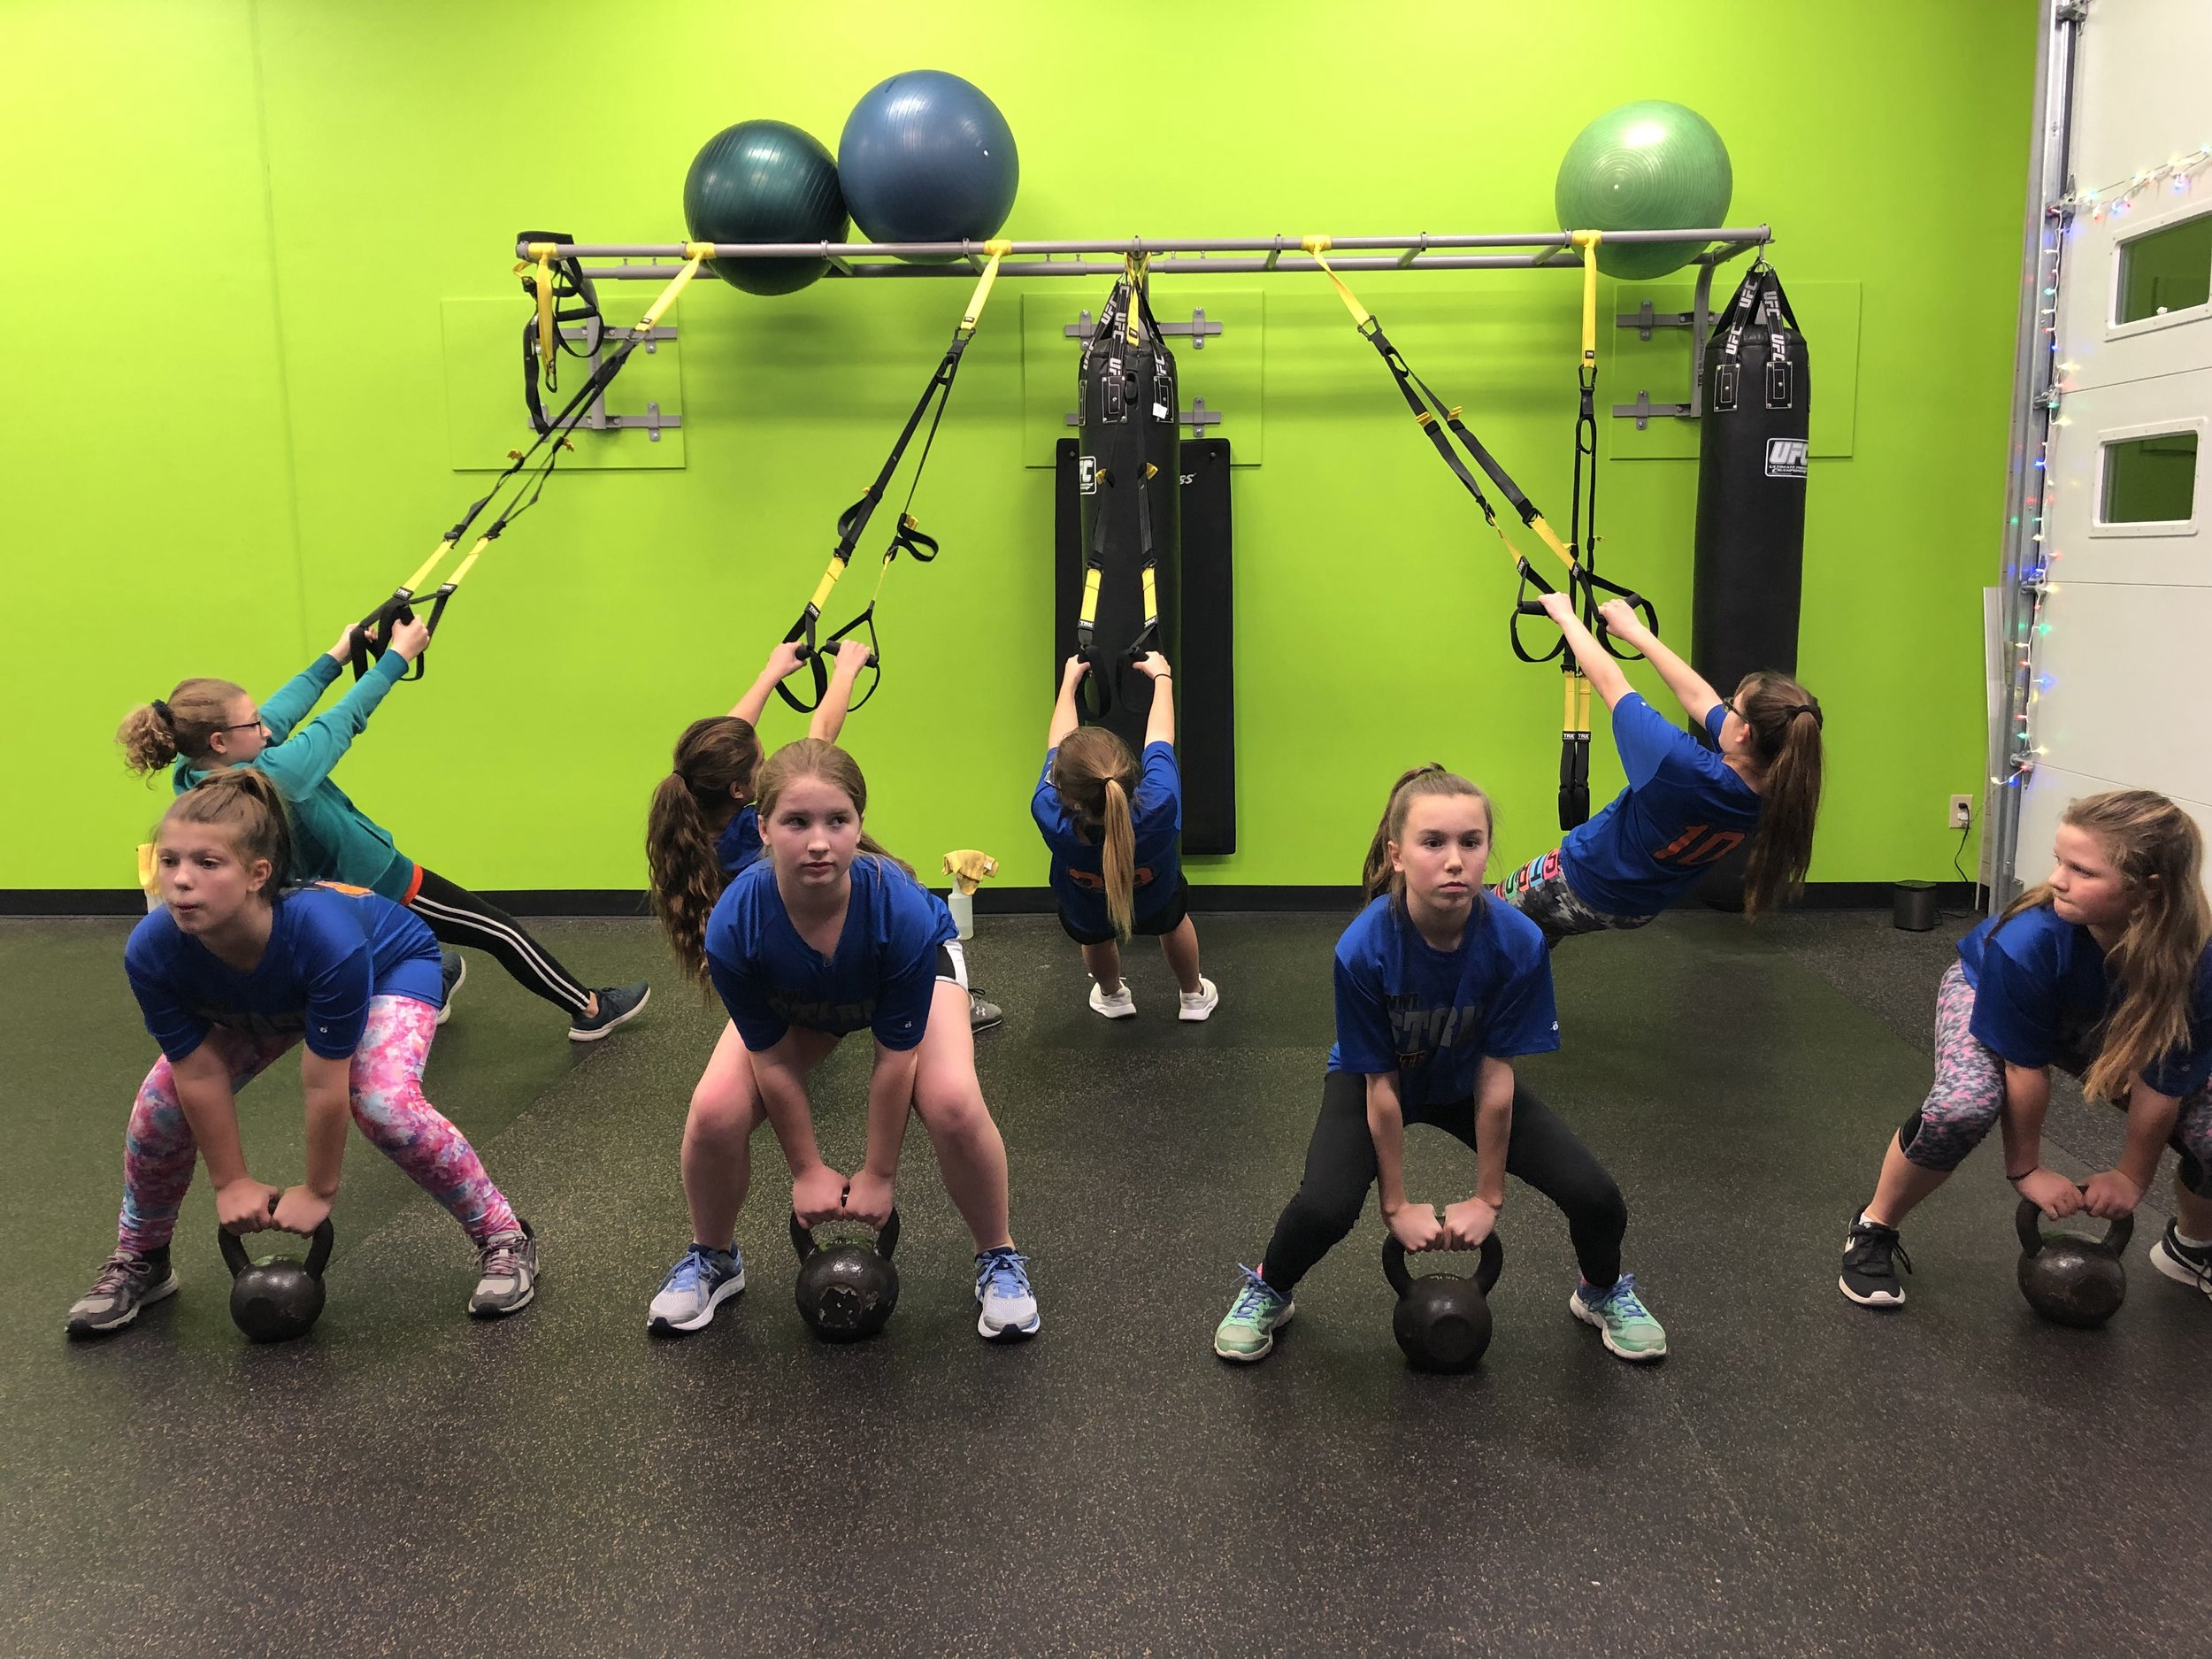 trufit-kettlebell-personal-group-training-sports-performance-gym-valparaiso-workout-fitness-trx-squat.jpg